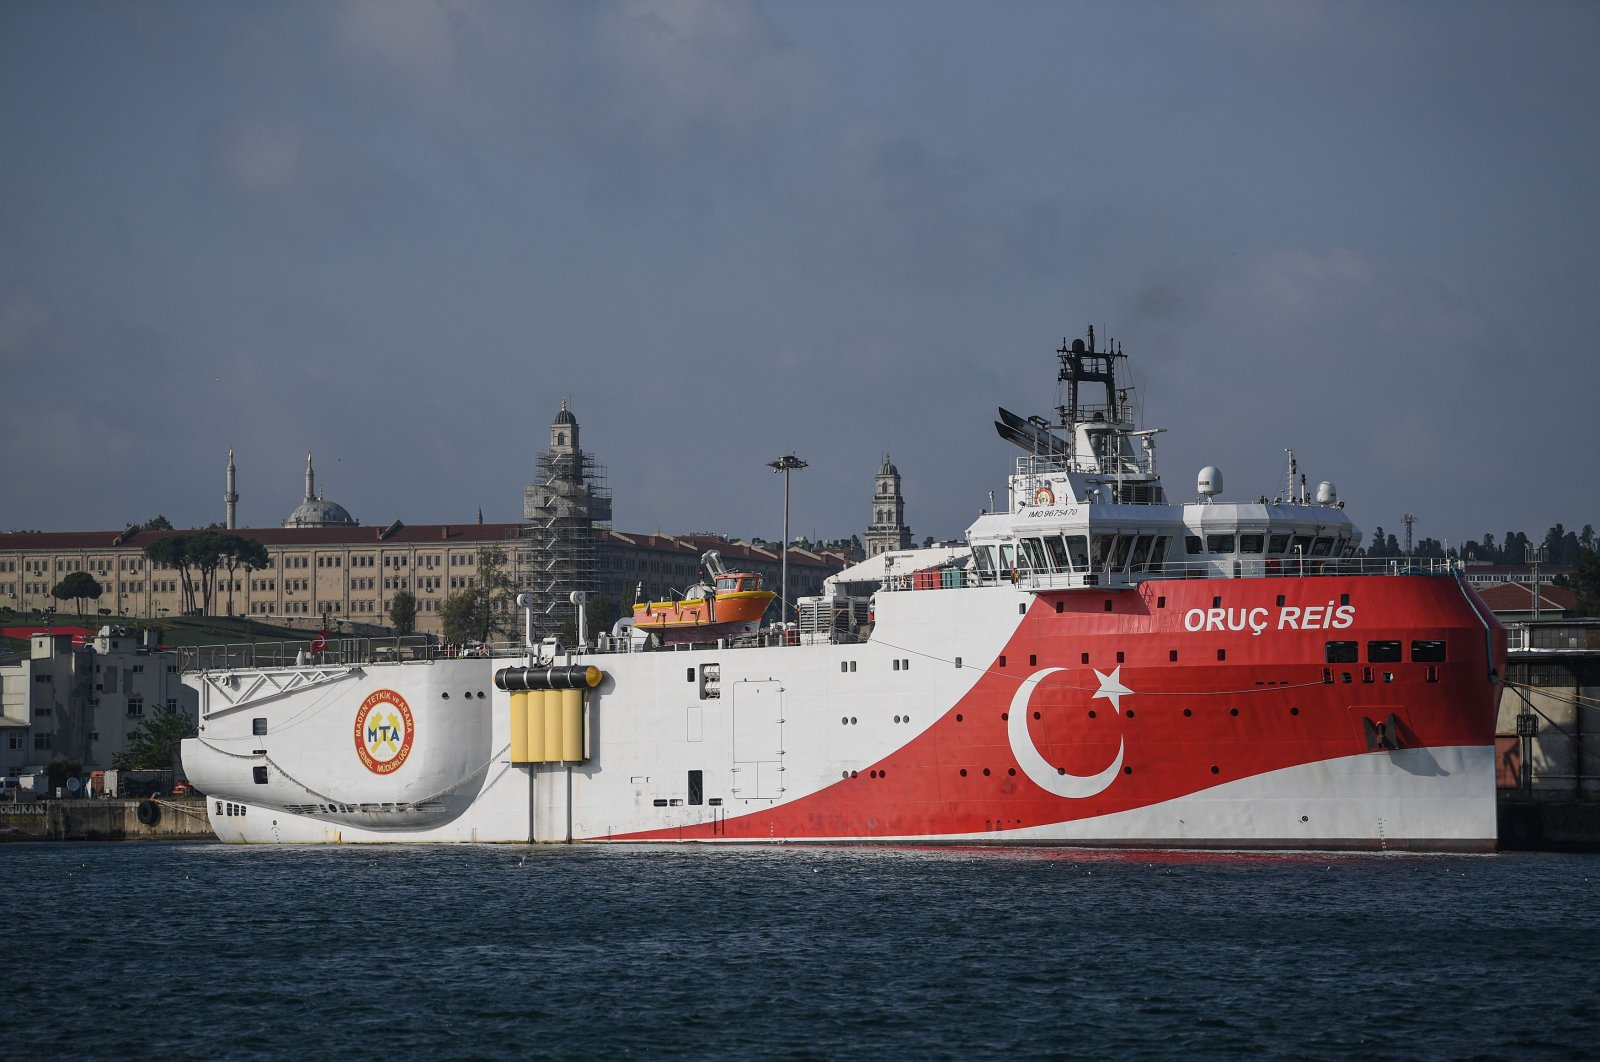 A view of Turkey's Oruç Reis seismic research vessel docked at Haydarpaşa Port, which searches for hydrocarbon, oil, natural gas and coal reserves at sea, Aug. 23, 2019. (AFP Photo)